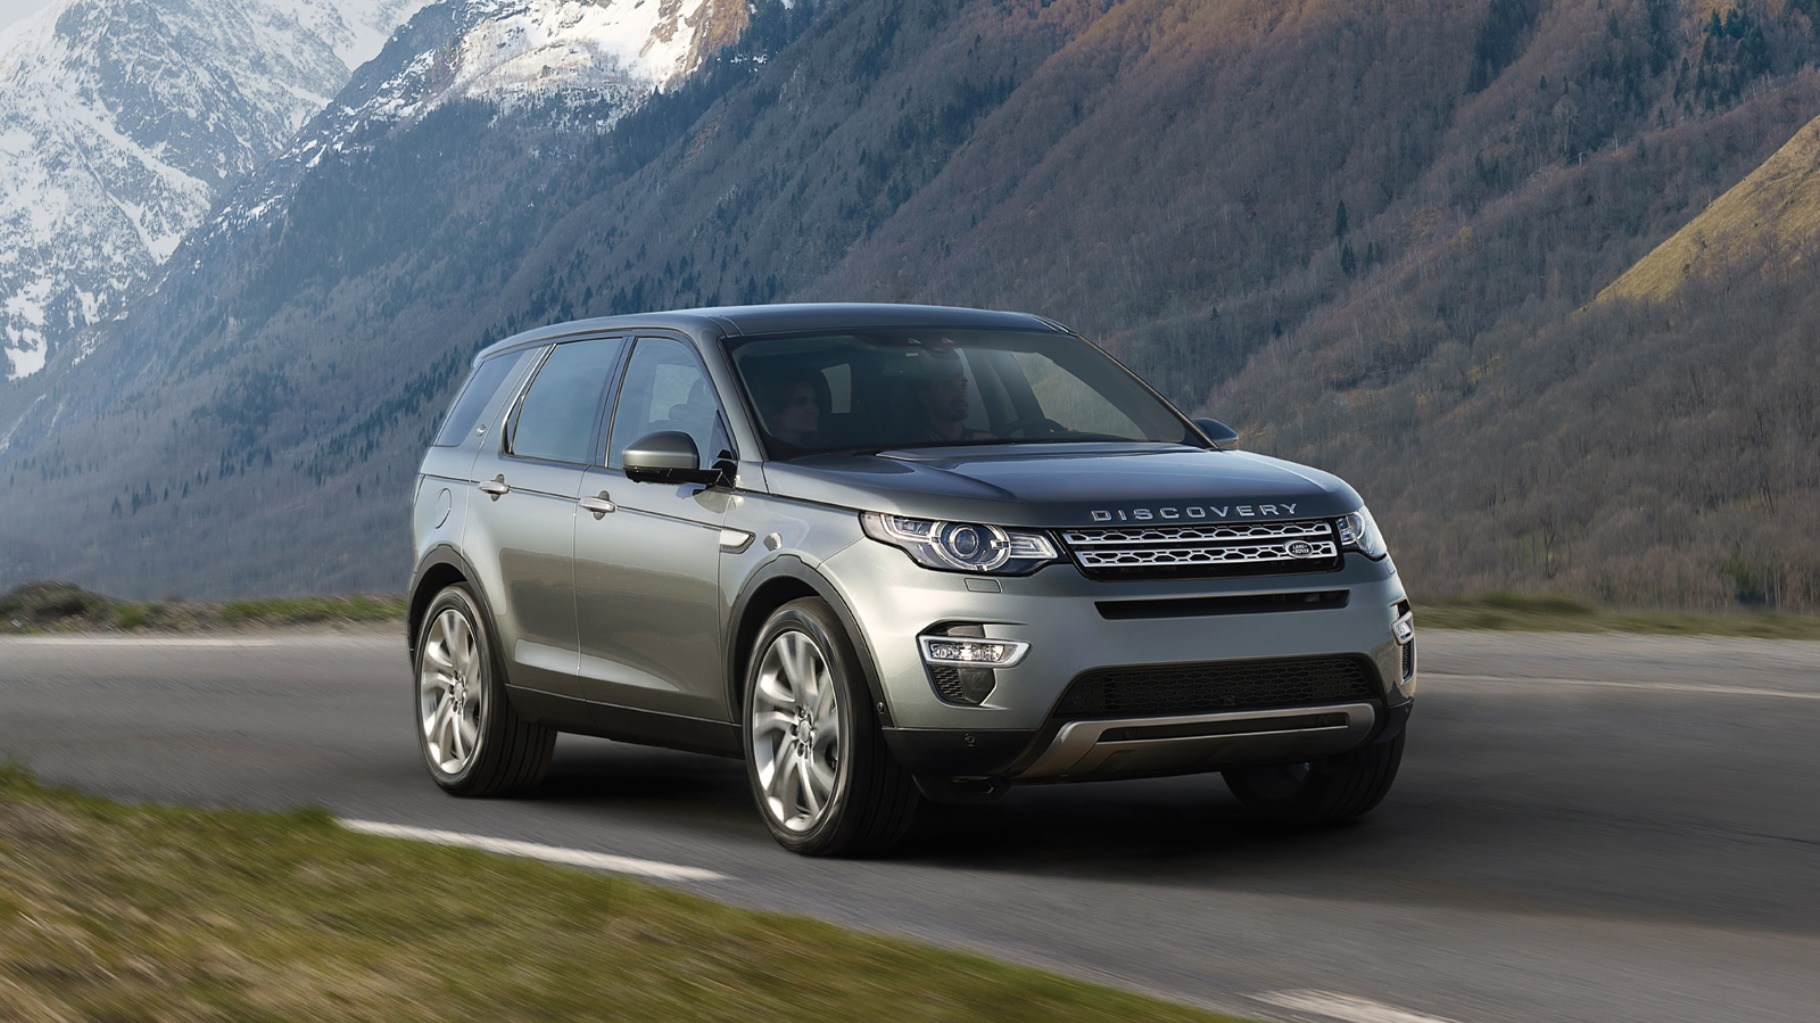 changes are coming to the 2015 land rover discovery sport funtodrive net. Black Bedroom Furniture Sets. Home Design Ideas